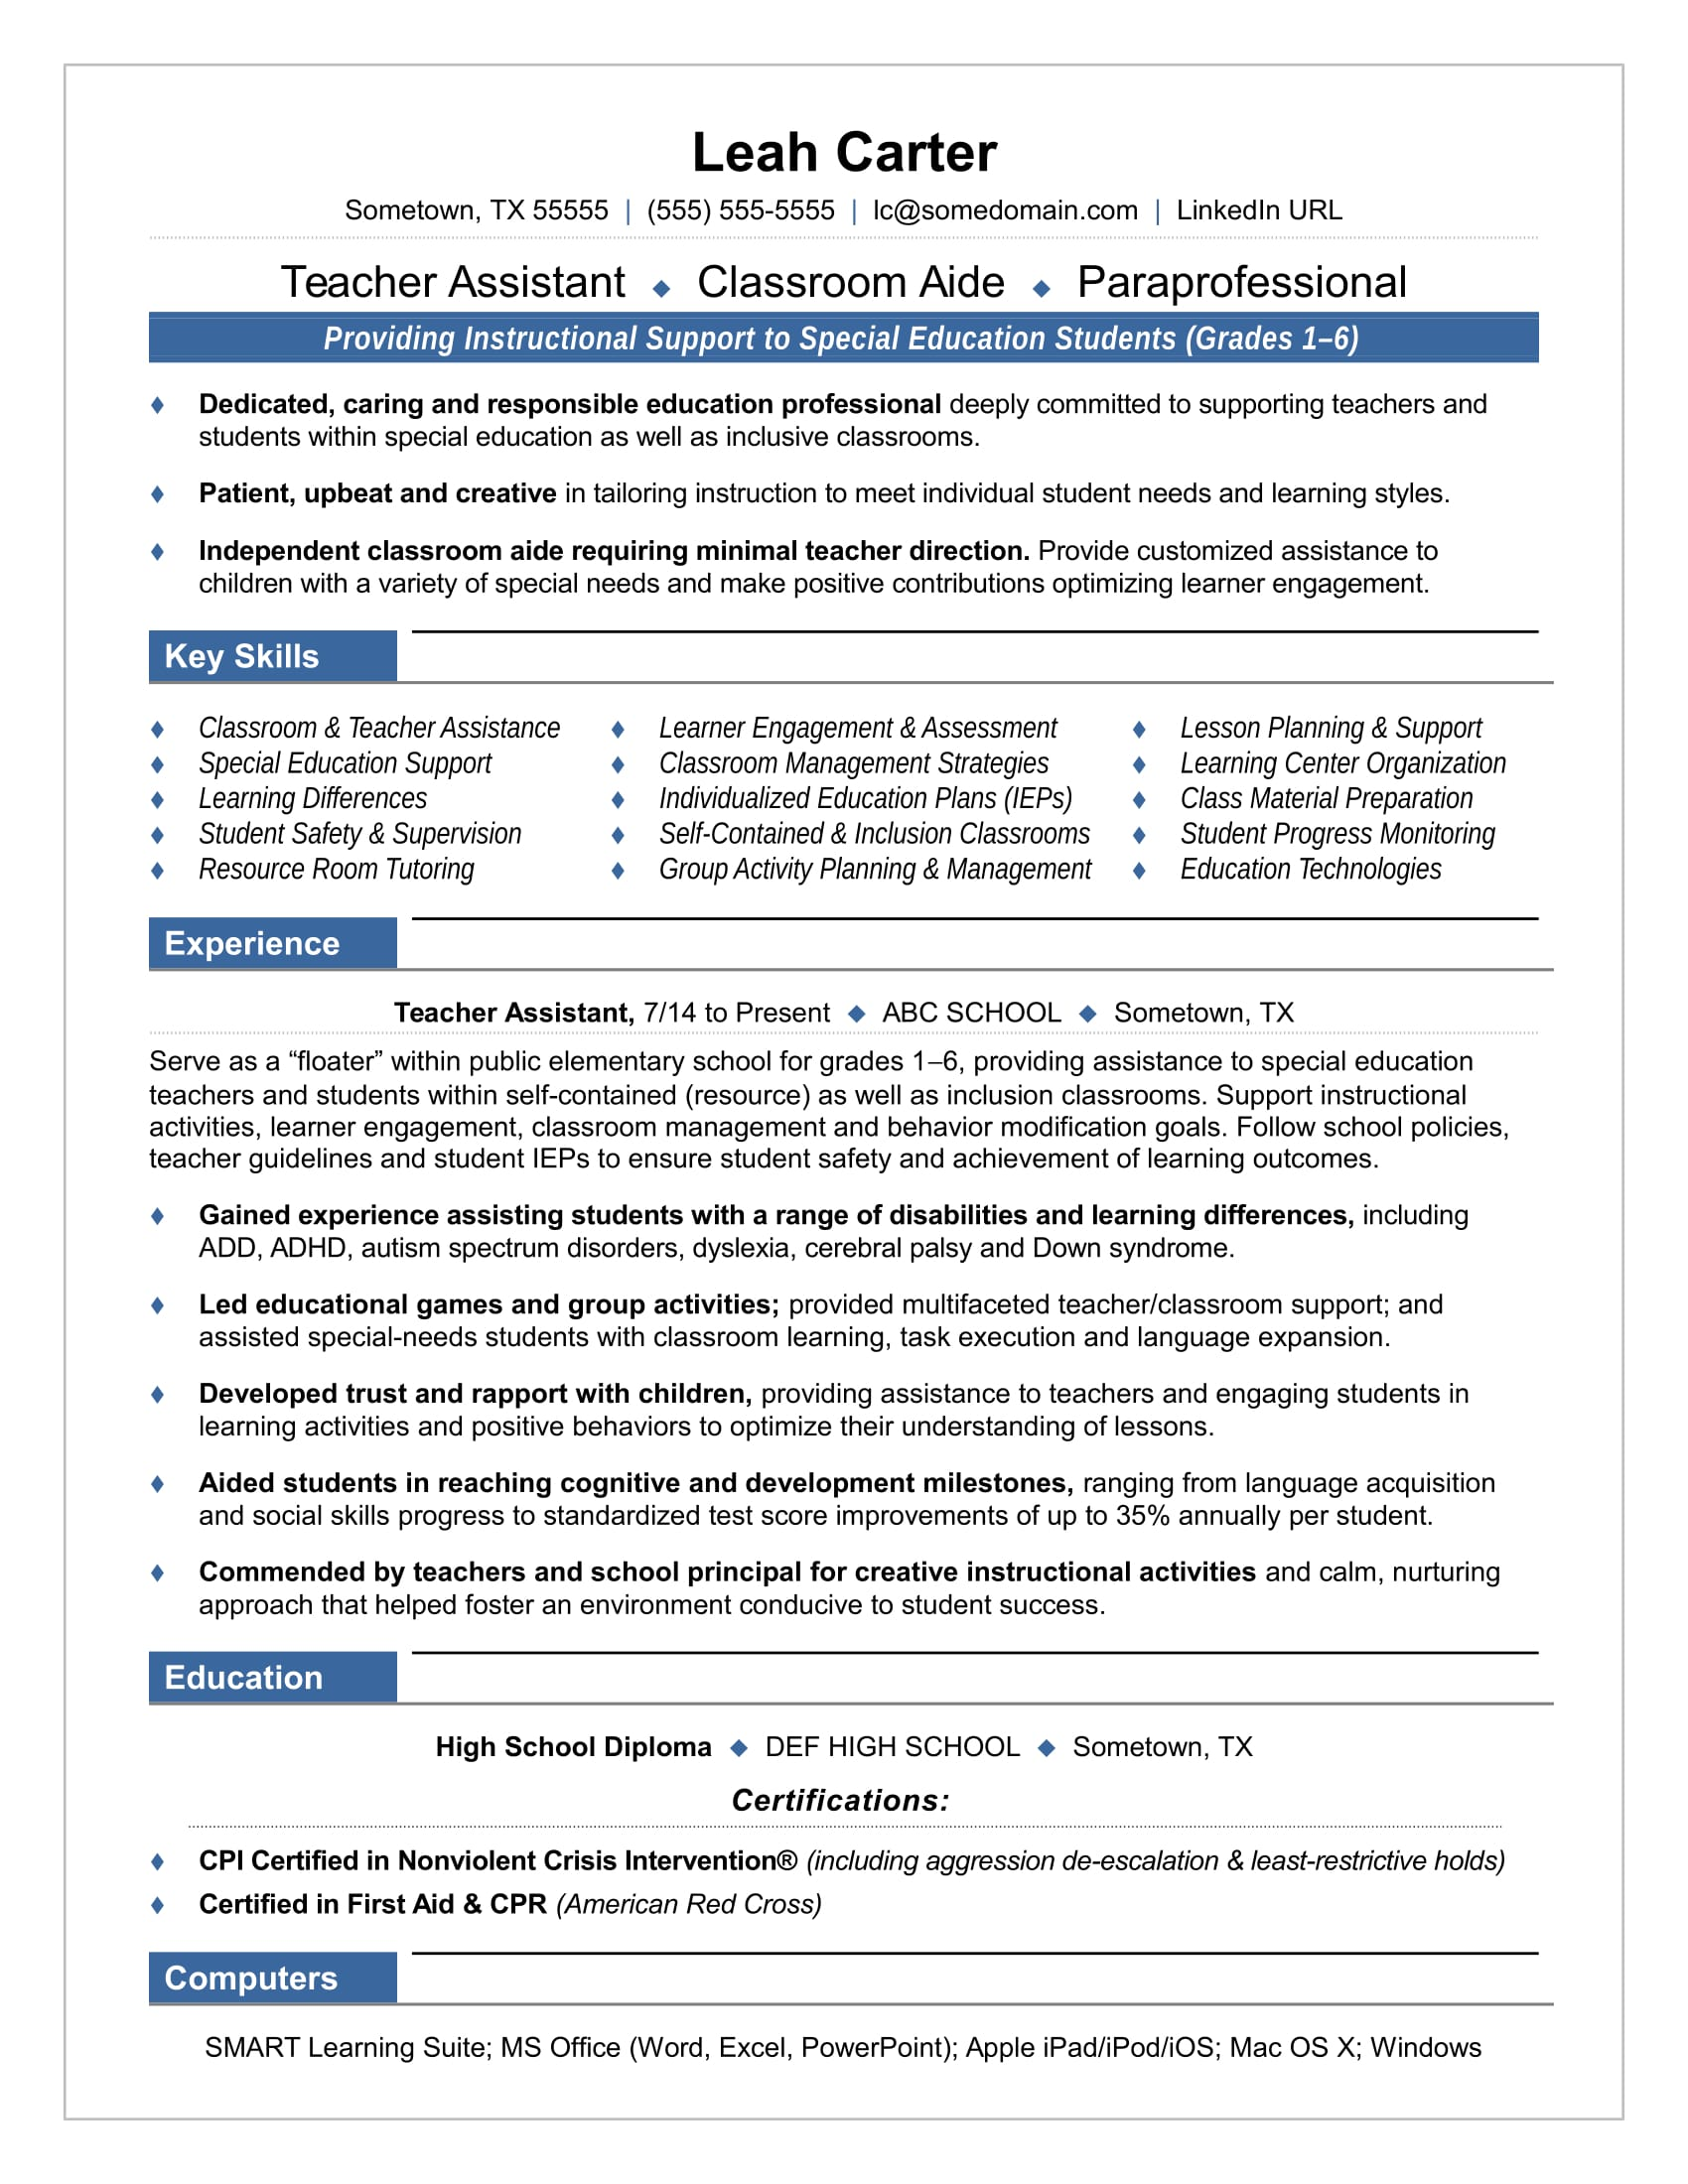 Teacher Assistant Resume Sample  Resume Templates That Stand Out